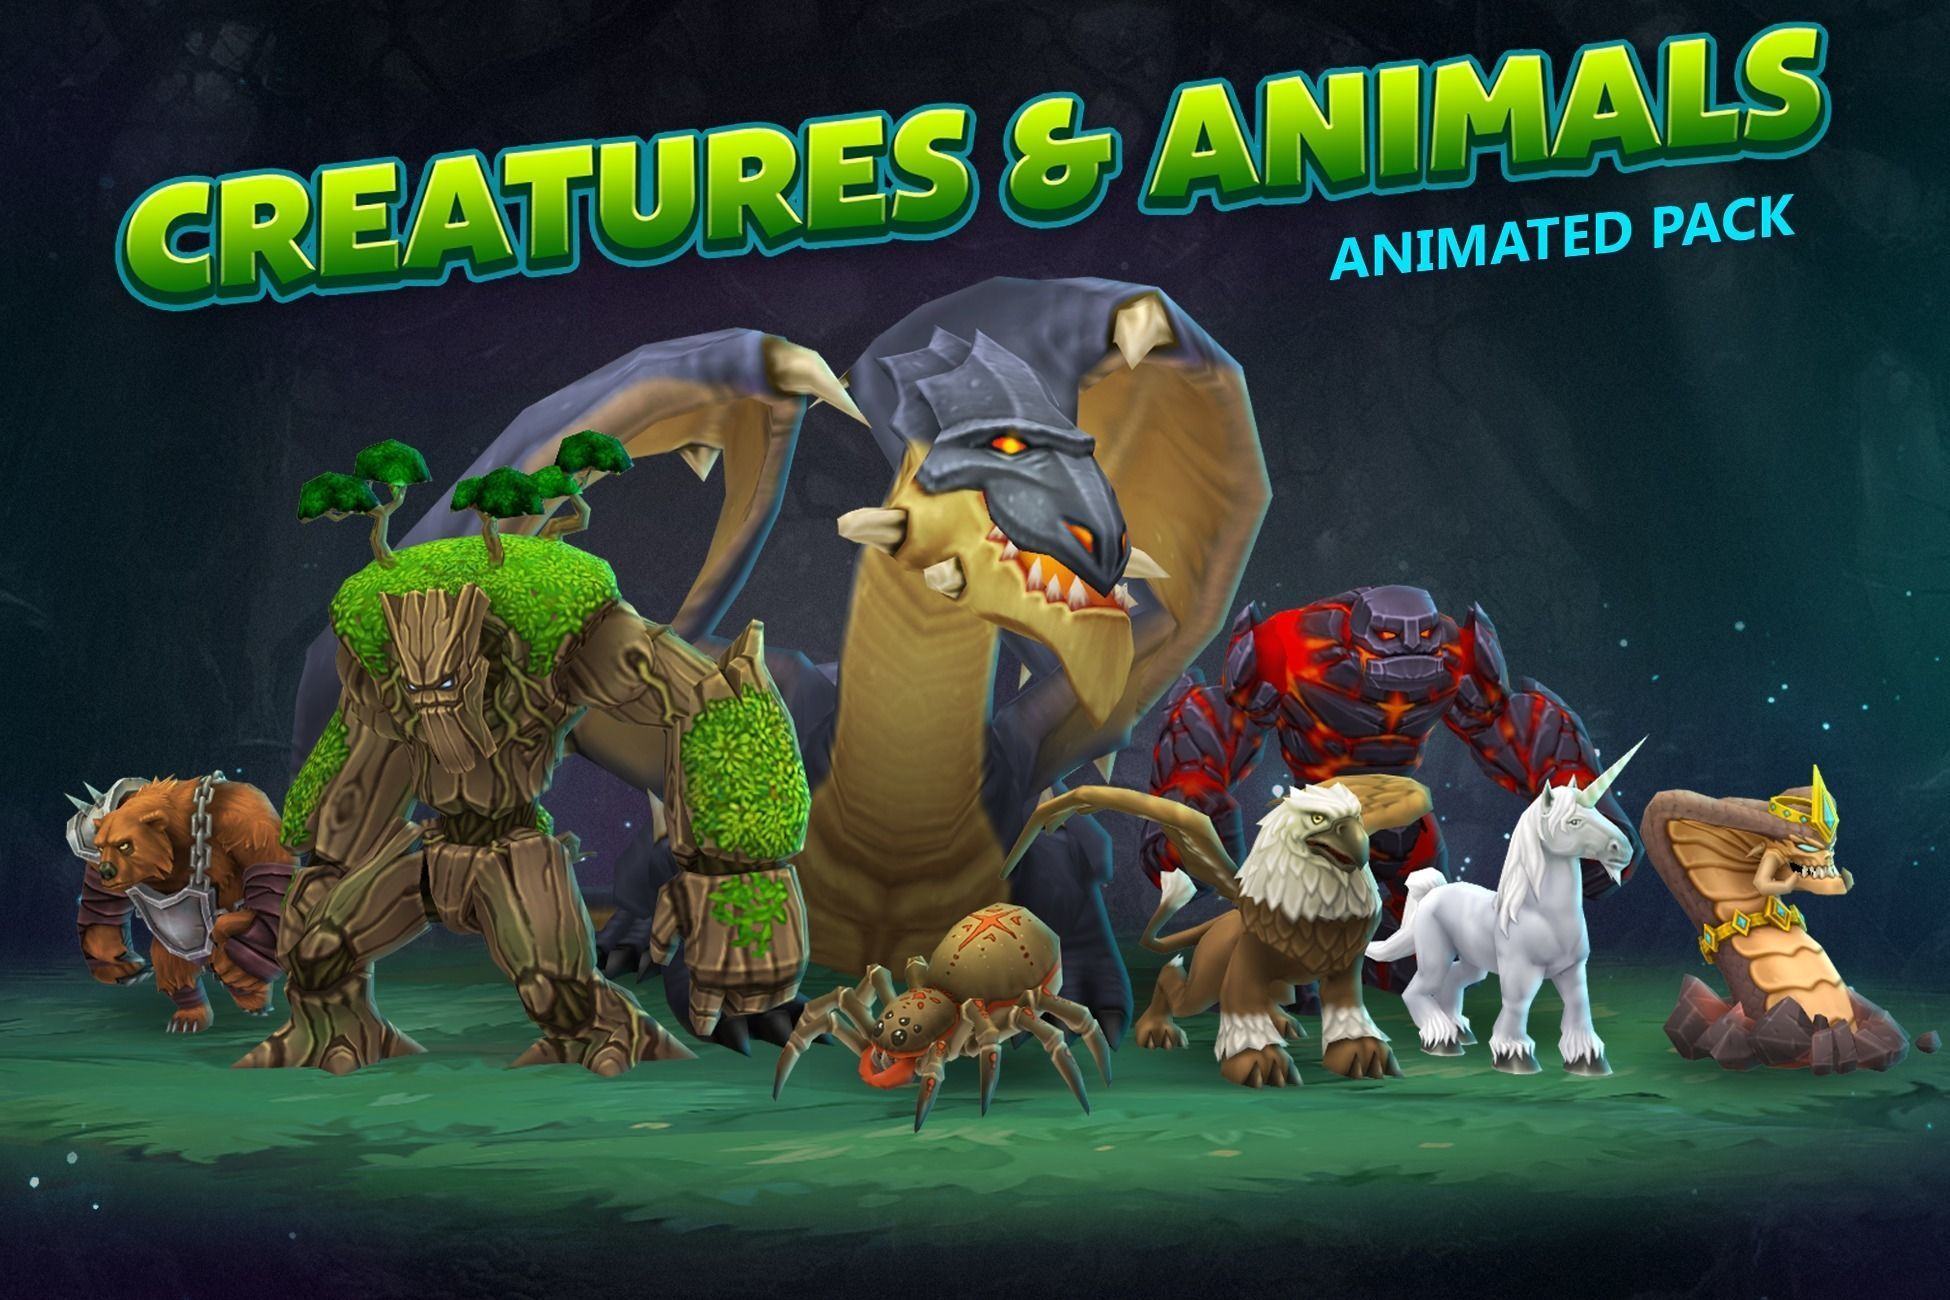 Creatures and animals animated pack